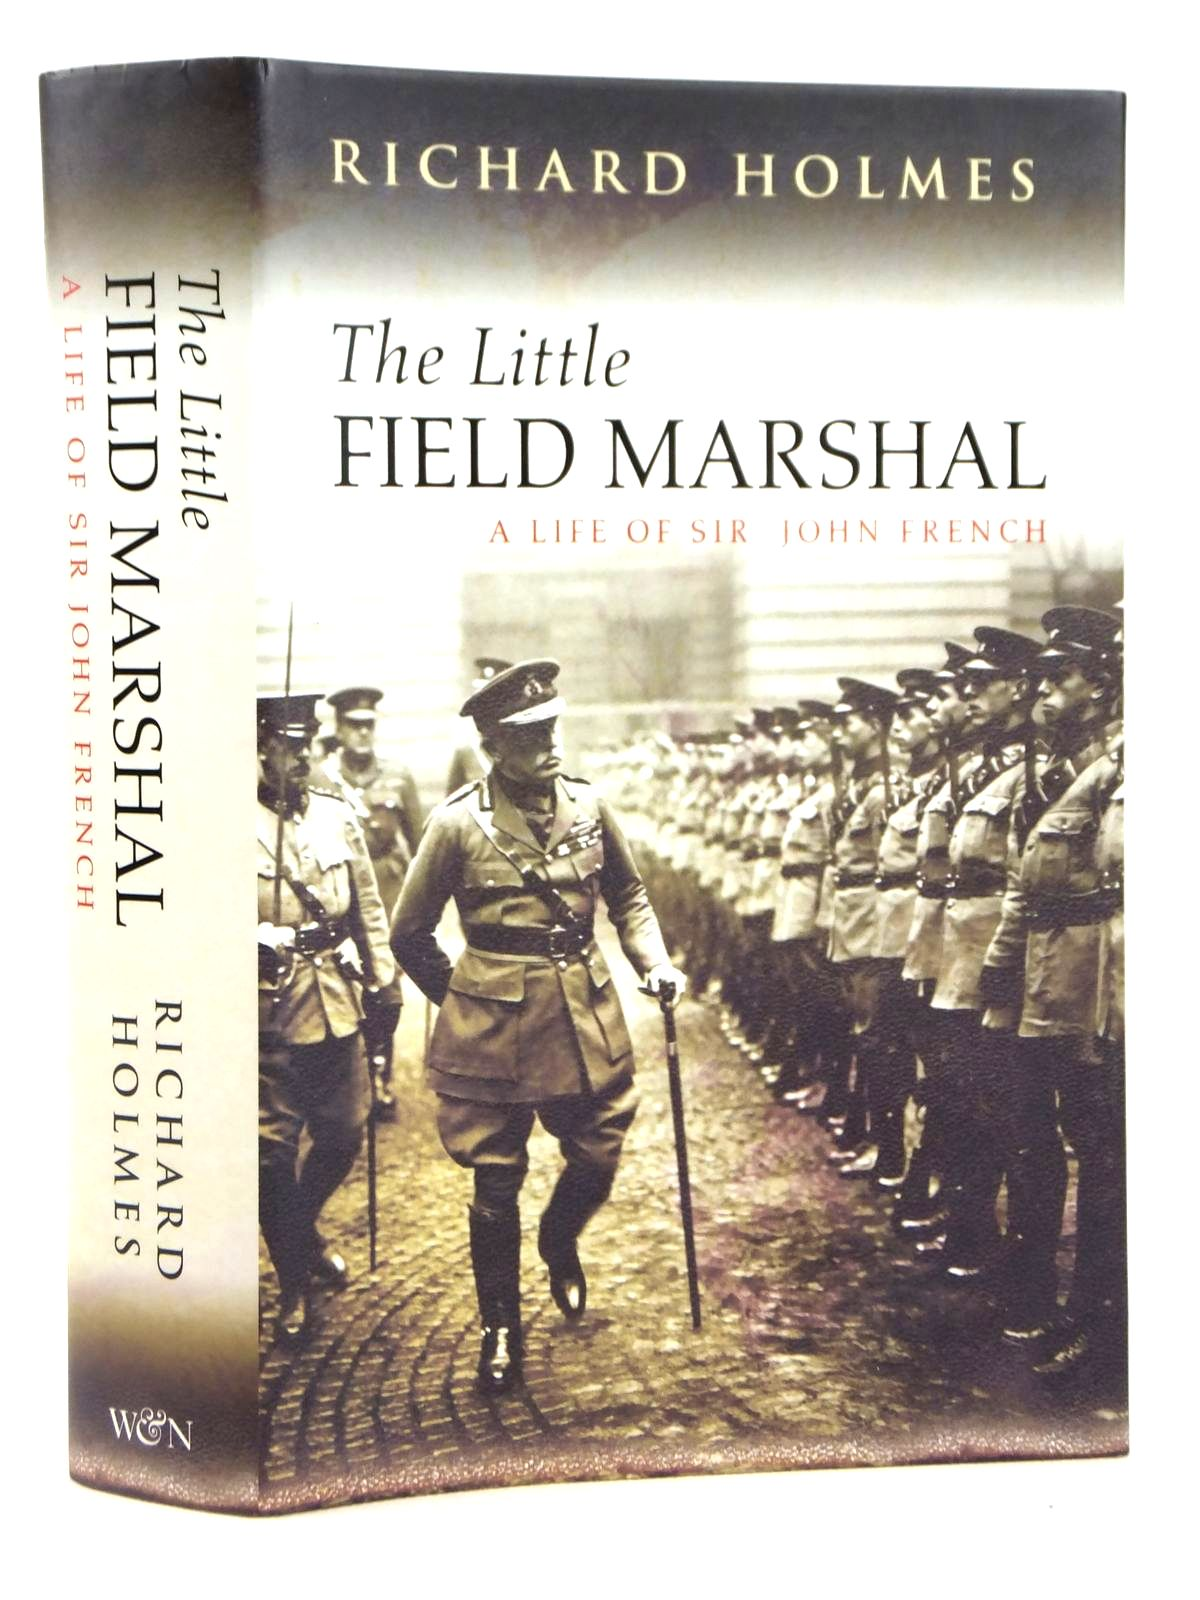 Photo of THE LITTLE FIELD MARSHAL A LIFE OF SIR JOHN FRENCH written by Holmes, Richard published by Weidenfeld and Nicolson (STOCK CODE: 1608834)  for sale by Stella & Rose's Books